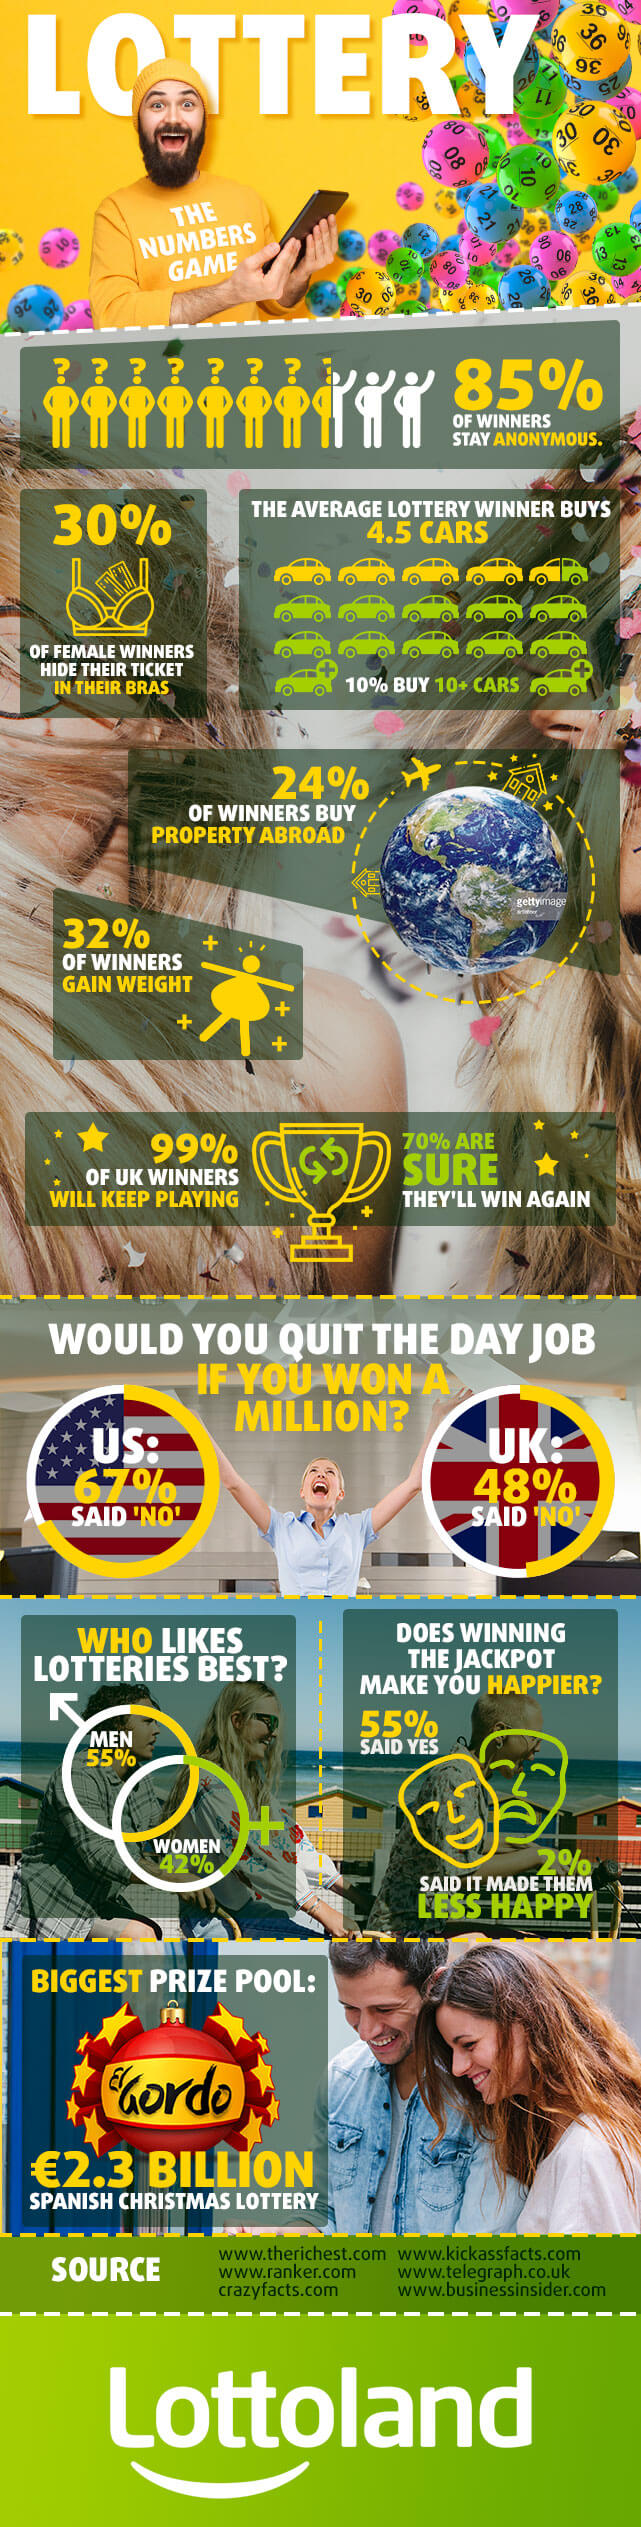 40 Fascinating Lottery Facts & Figures